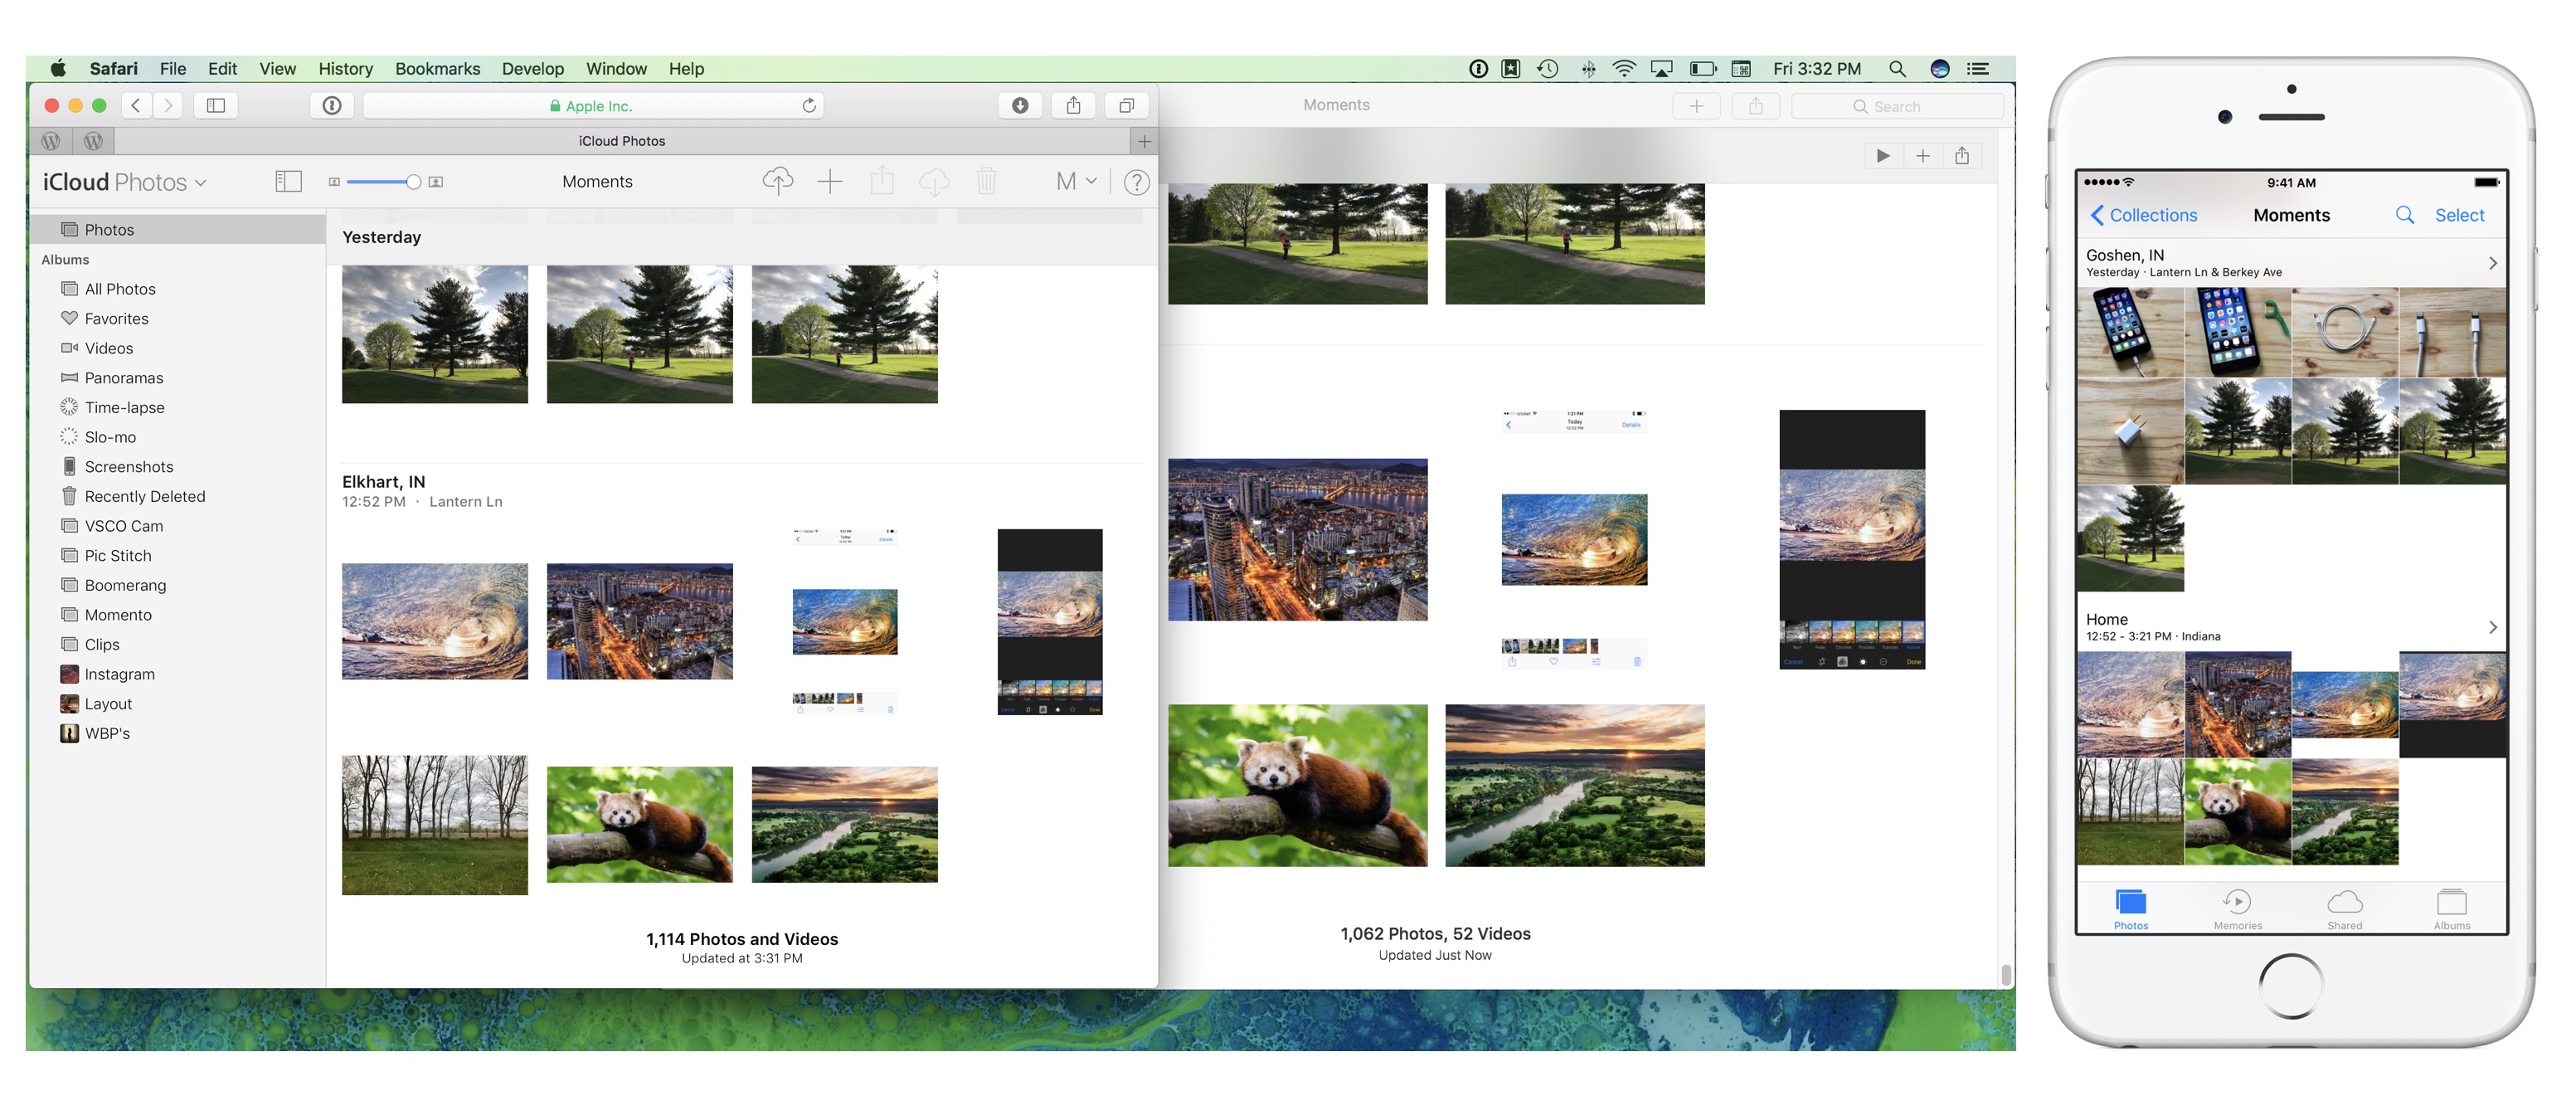 Image showing Photos synchronized across Mac, iPhone, and iCloud.com